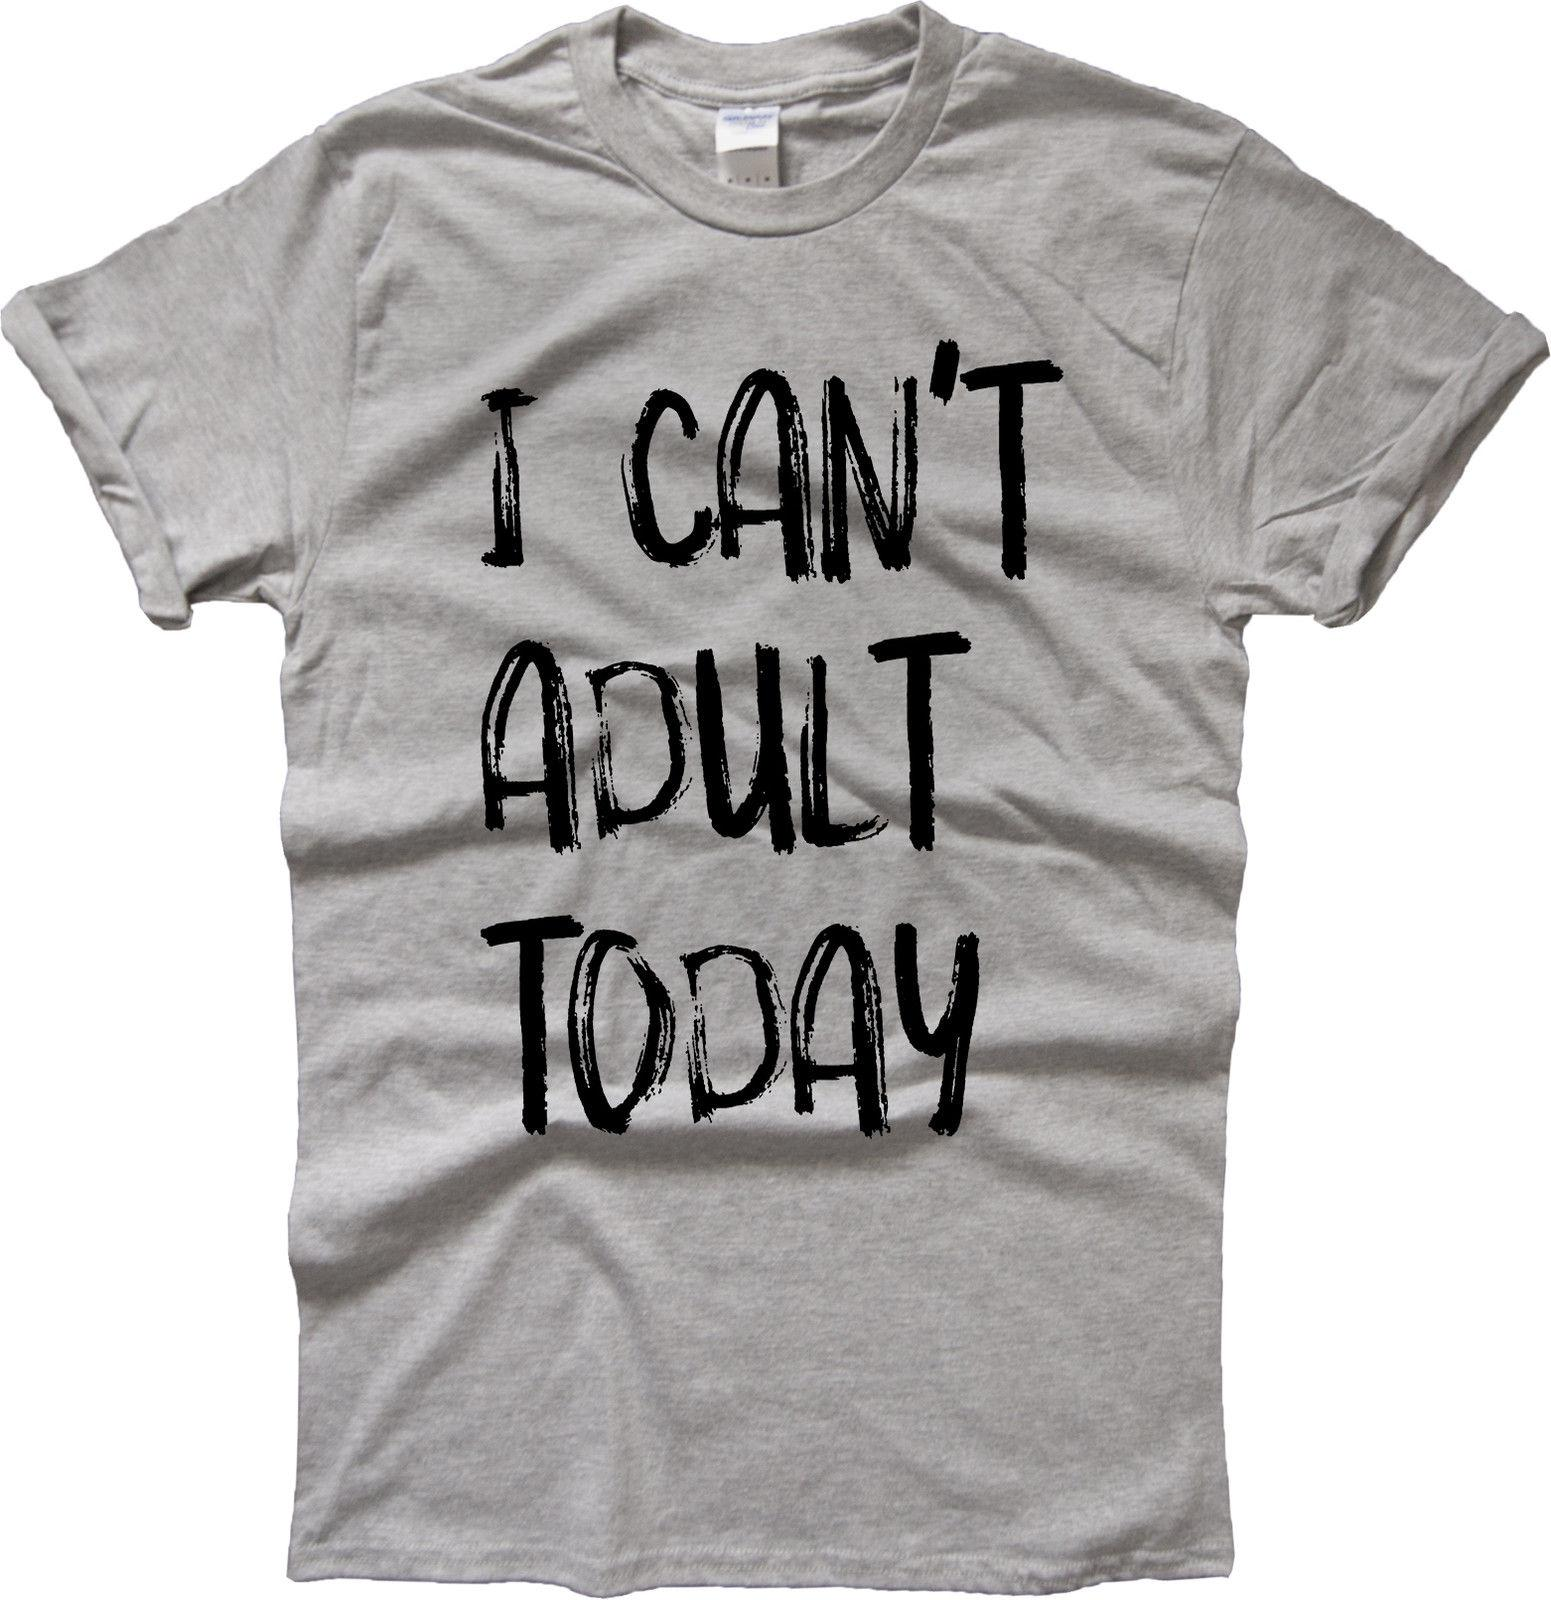 0348077ea1ad7 I CANT ADULT TODAY T-SHIRT HUMOR GROW UP URBAN CLOTHING FASHION TEE TOP  Funny free shipping Unisex Casual